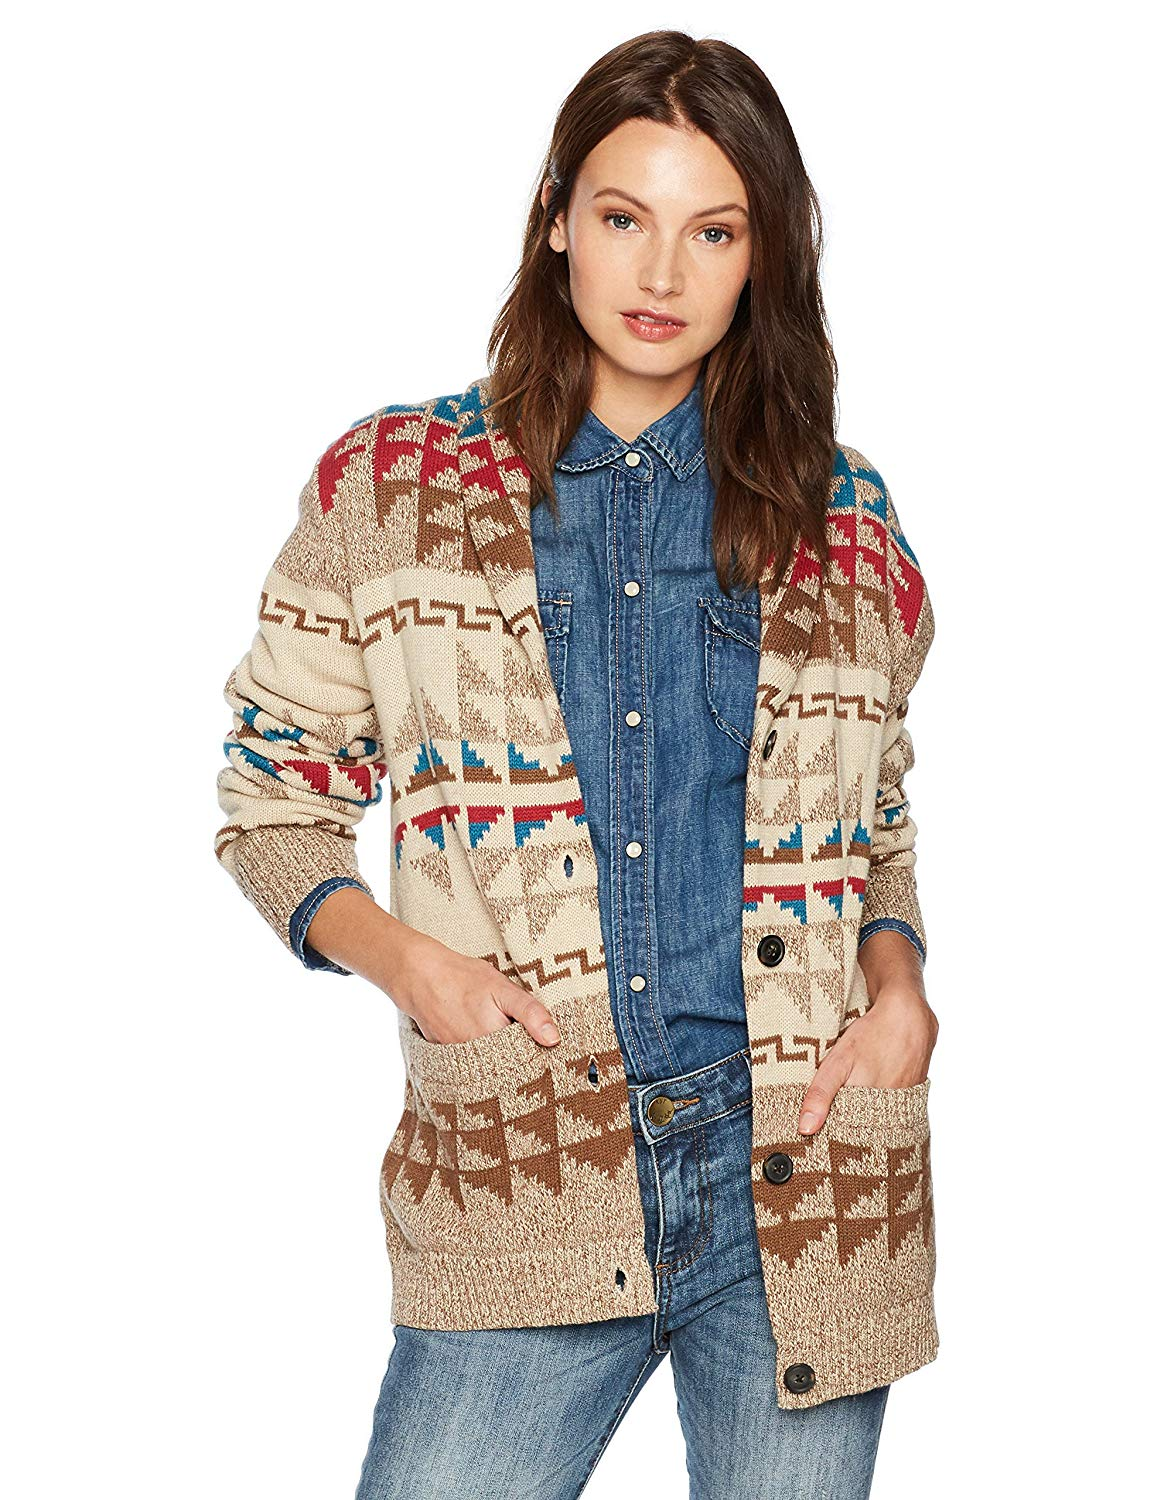 769dde627ee7d5 Get Quotations · Pendleton Women's Iconic Shawl Collar Cardigan Sweater